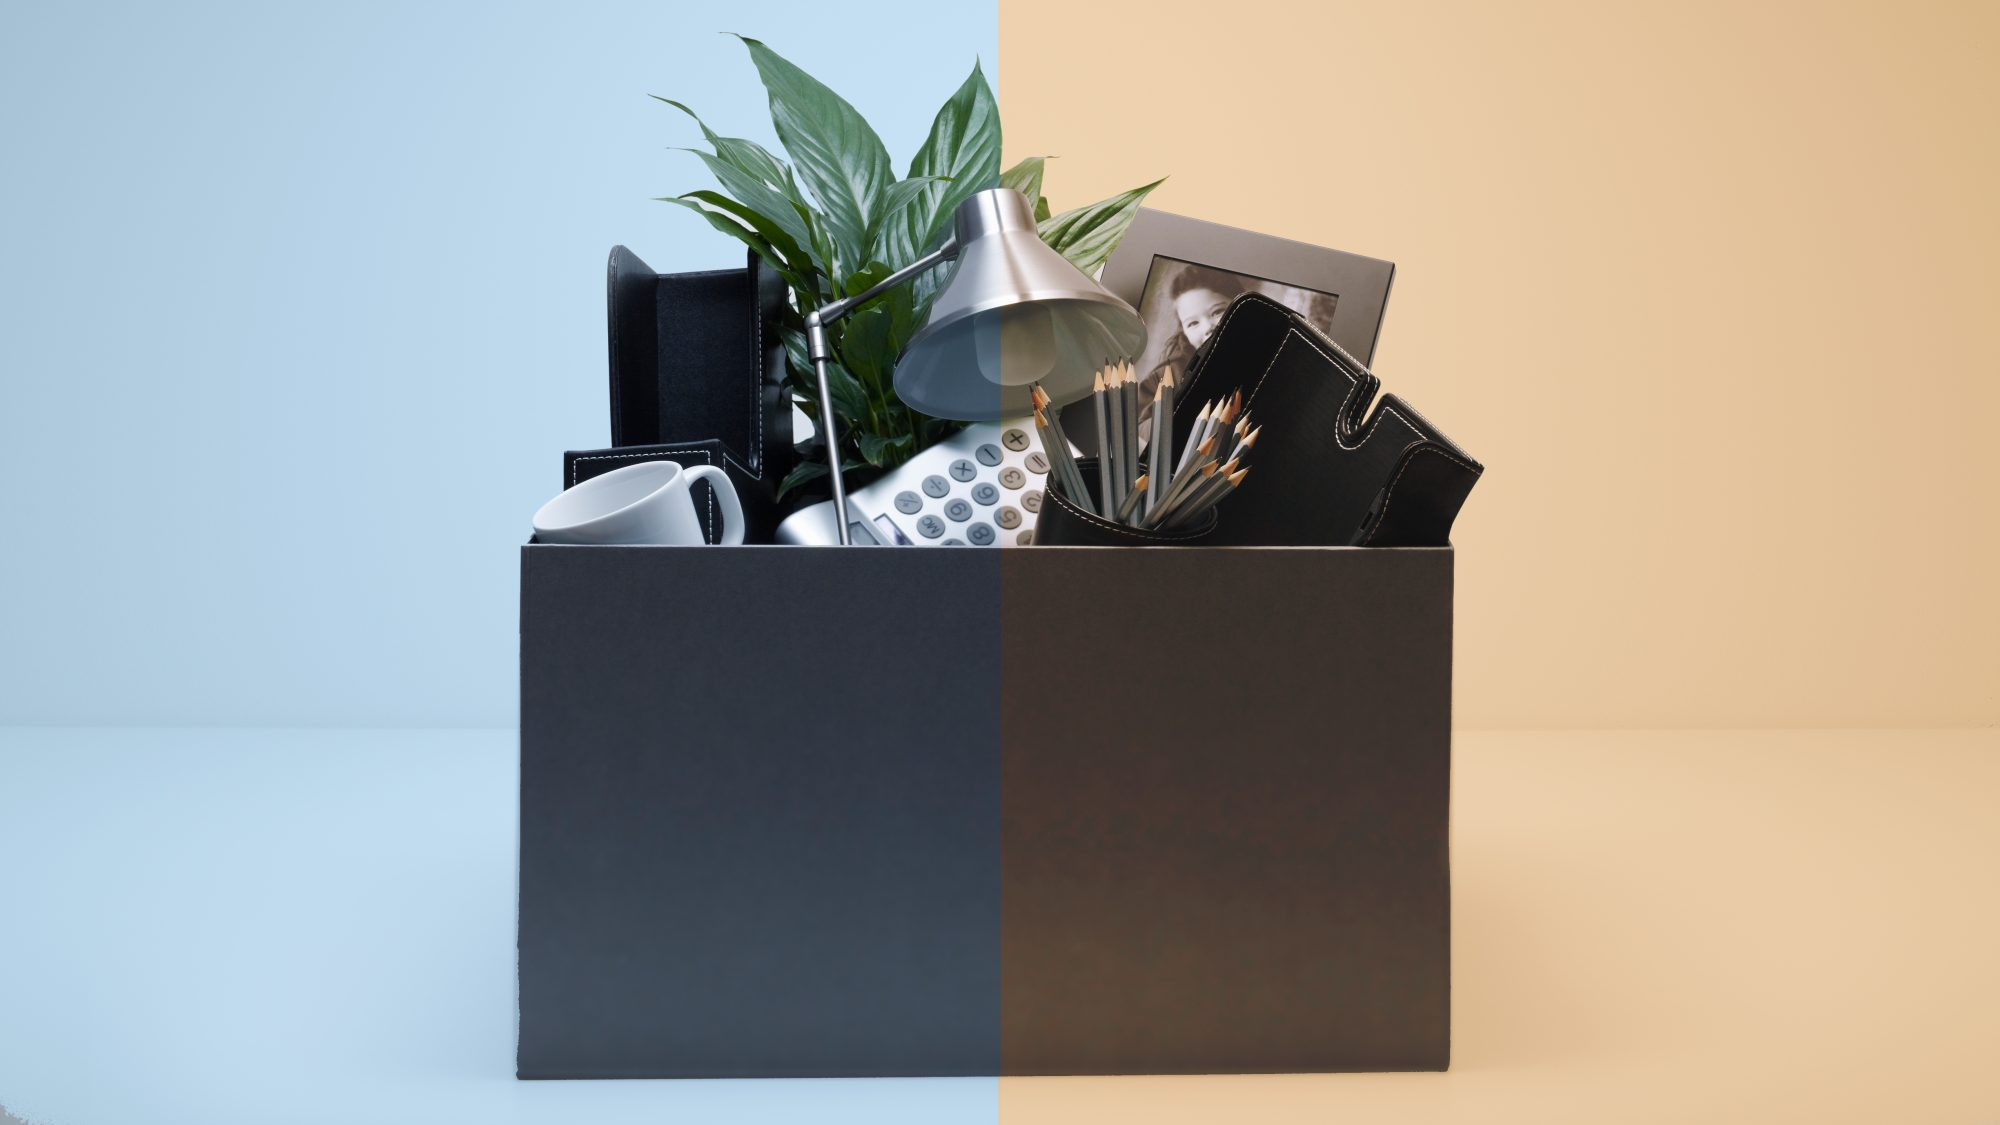 Furlough vs layoff: definition and difference (box of desk belongings)